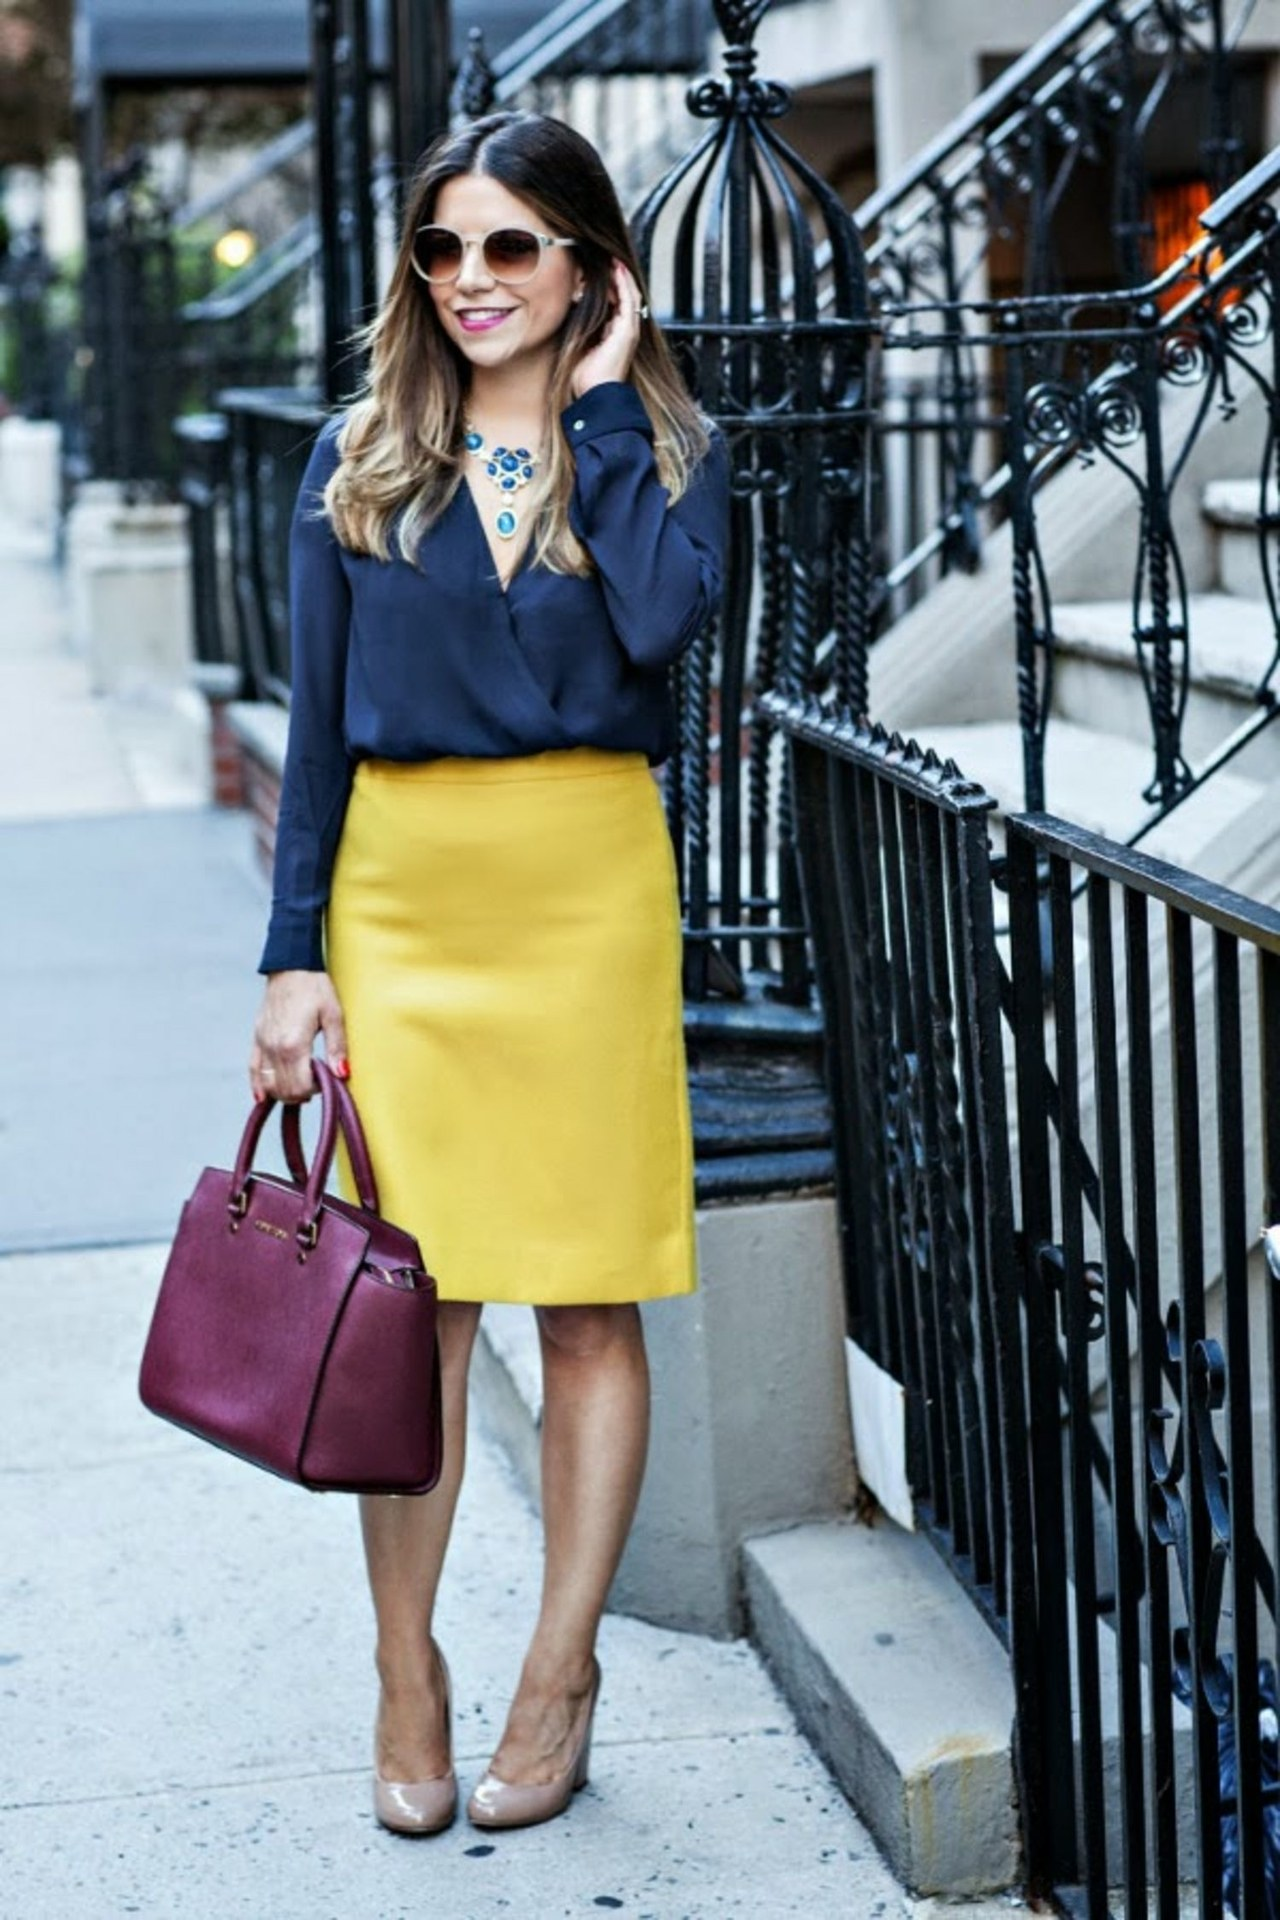 fashion-2015-09-work-office-outfit-pencil-skirt-corporate-catwalk-main